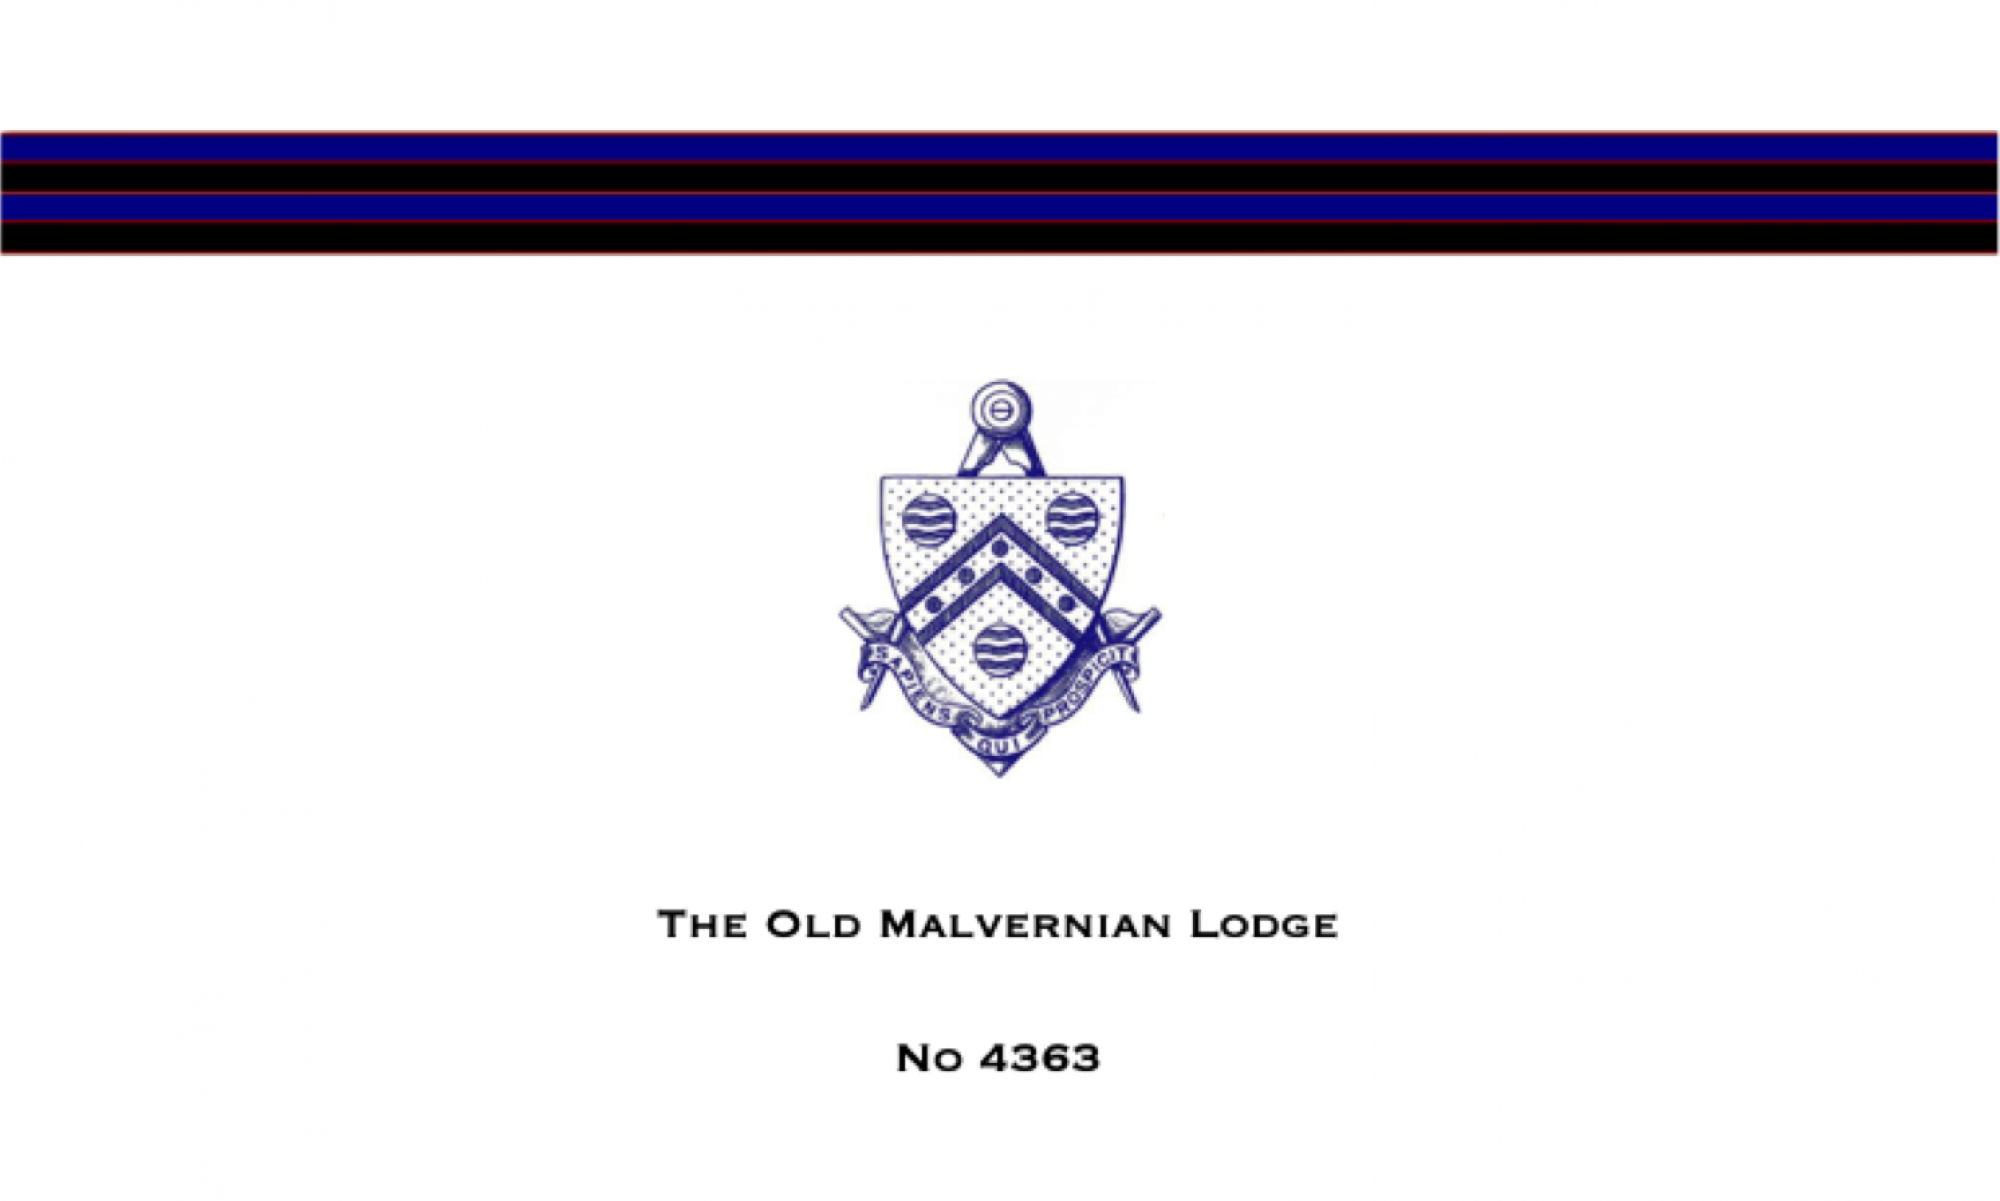 Old Malvernian Lodge No 4363